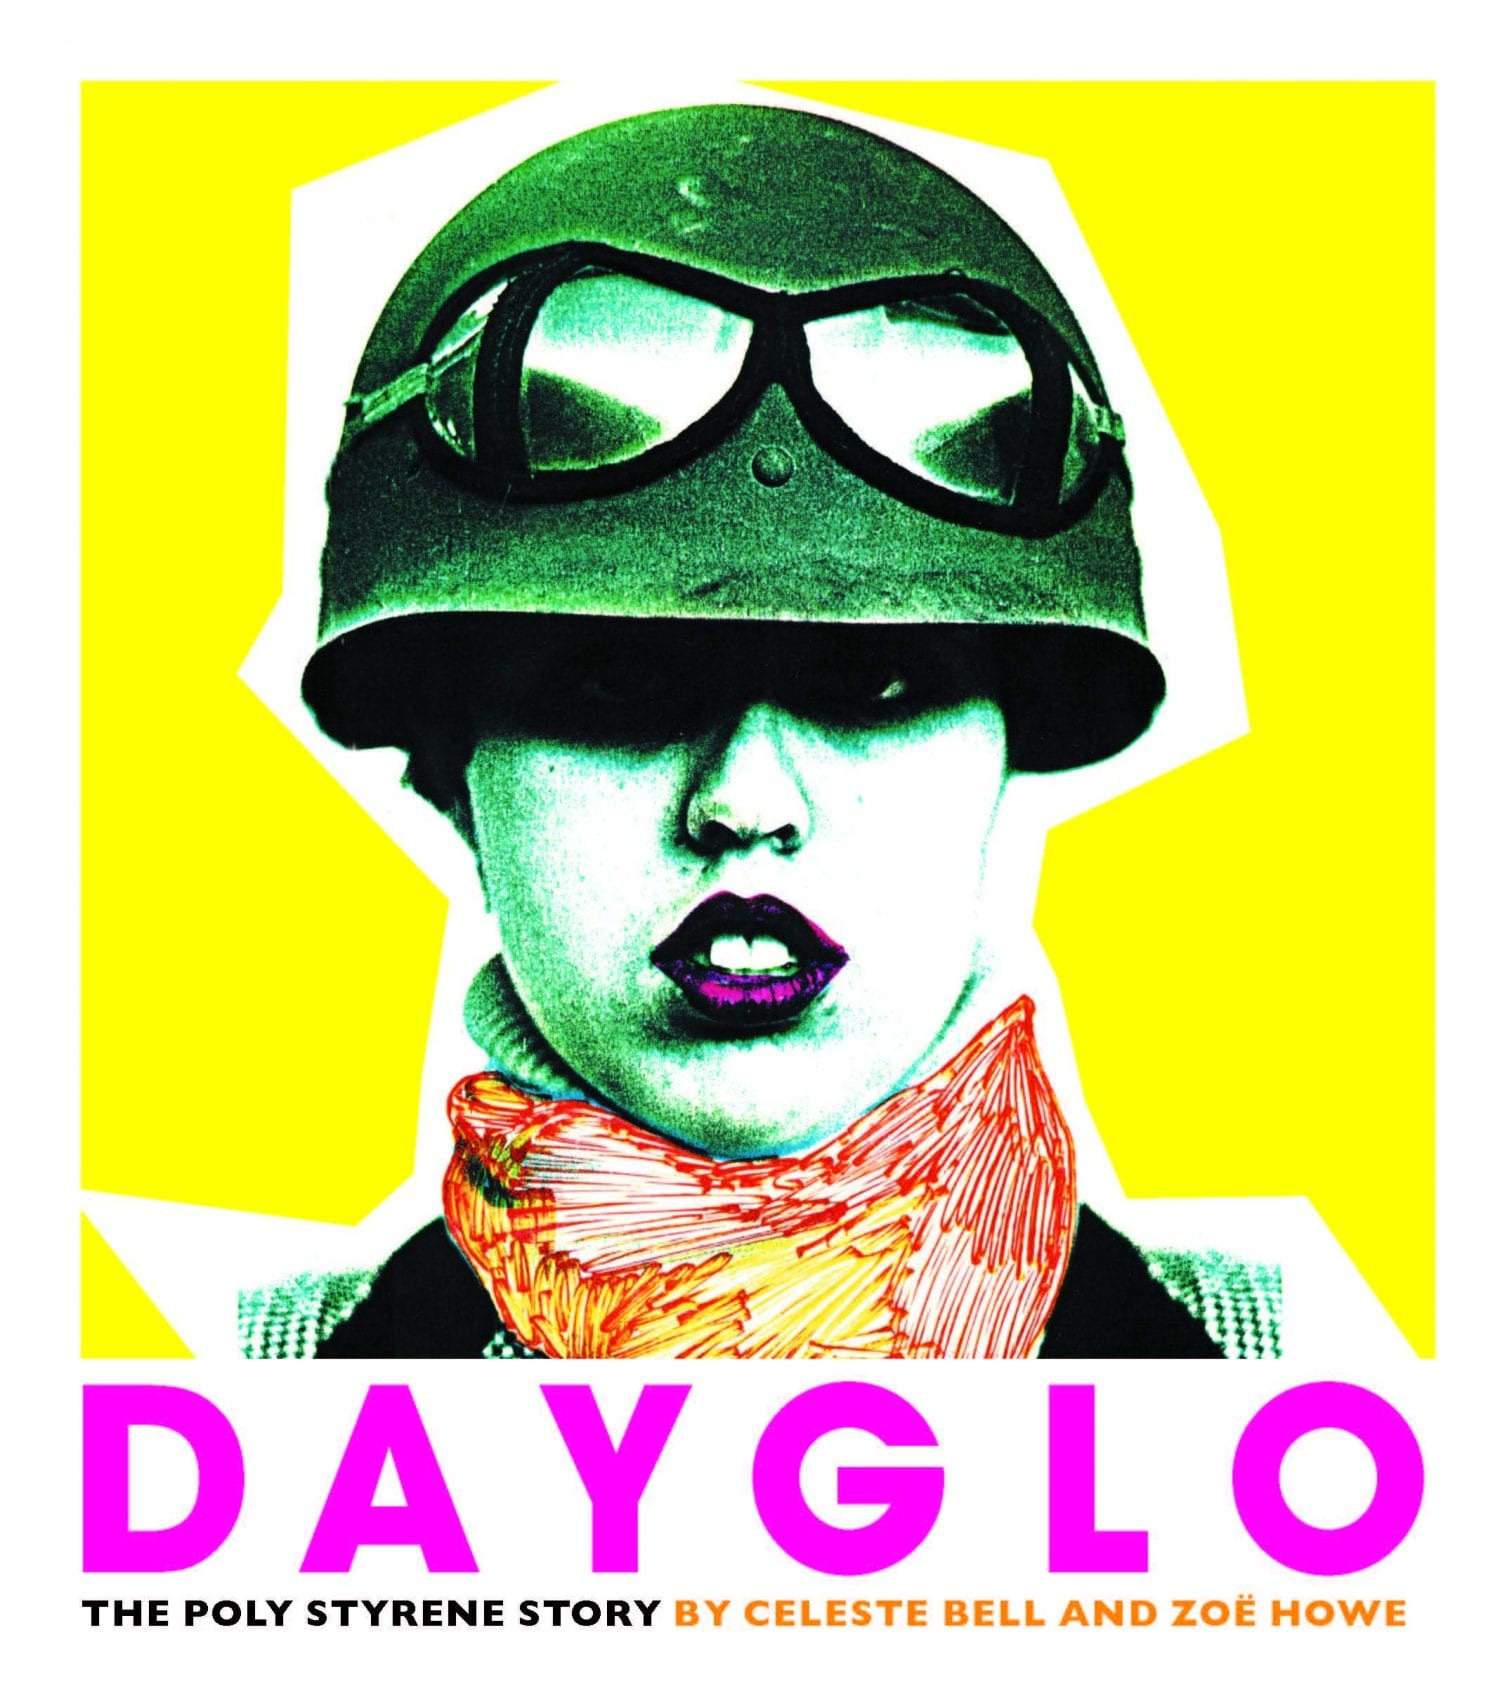 Dayglo: The Poly Styrene Story' Interview With Co-Author Celeste